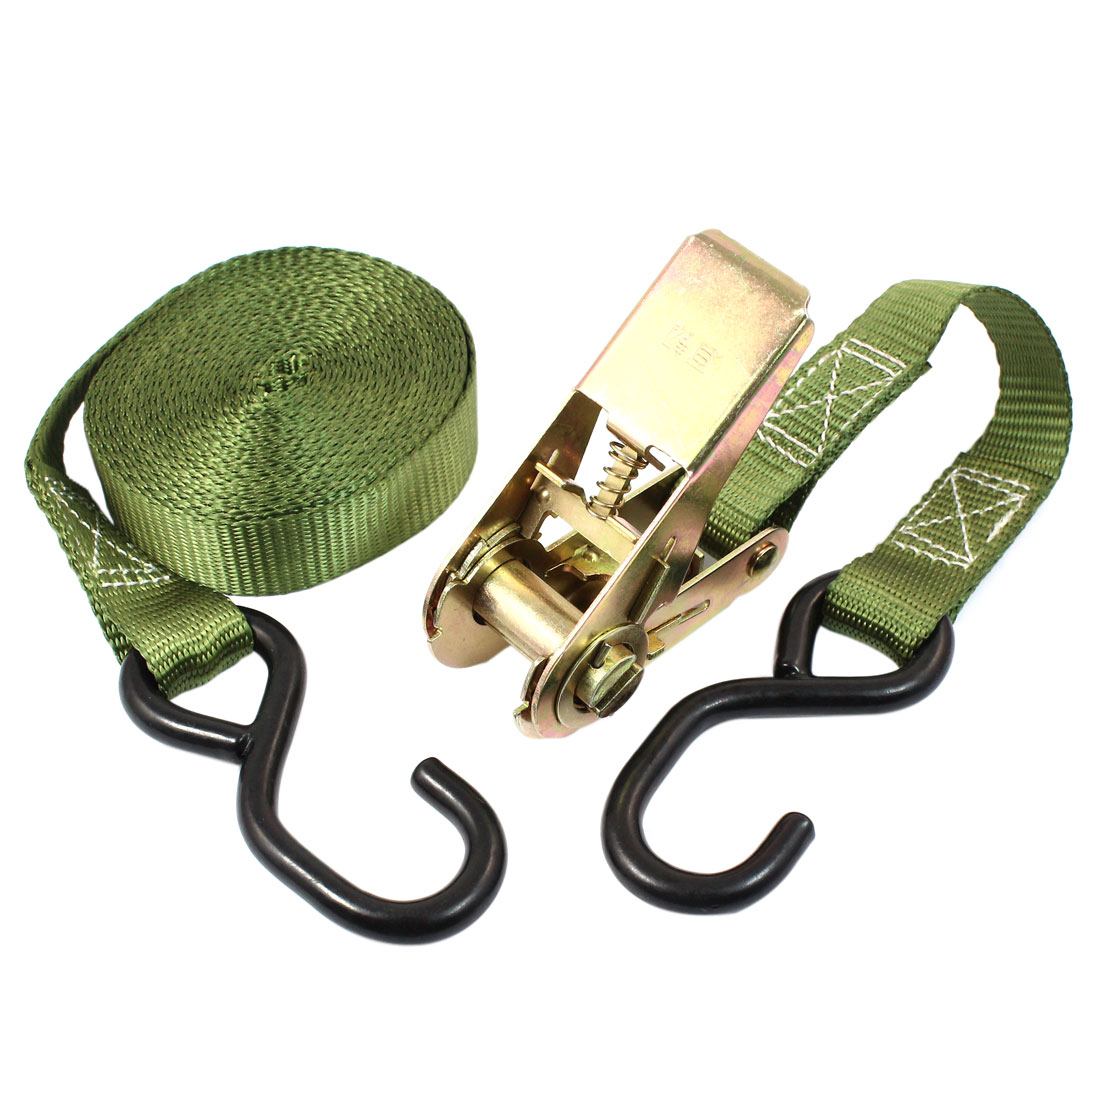 S Shape Metal Hook Cargo Binding Band Ratchet Tie Down Strap 5M 16ft Green